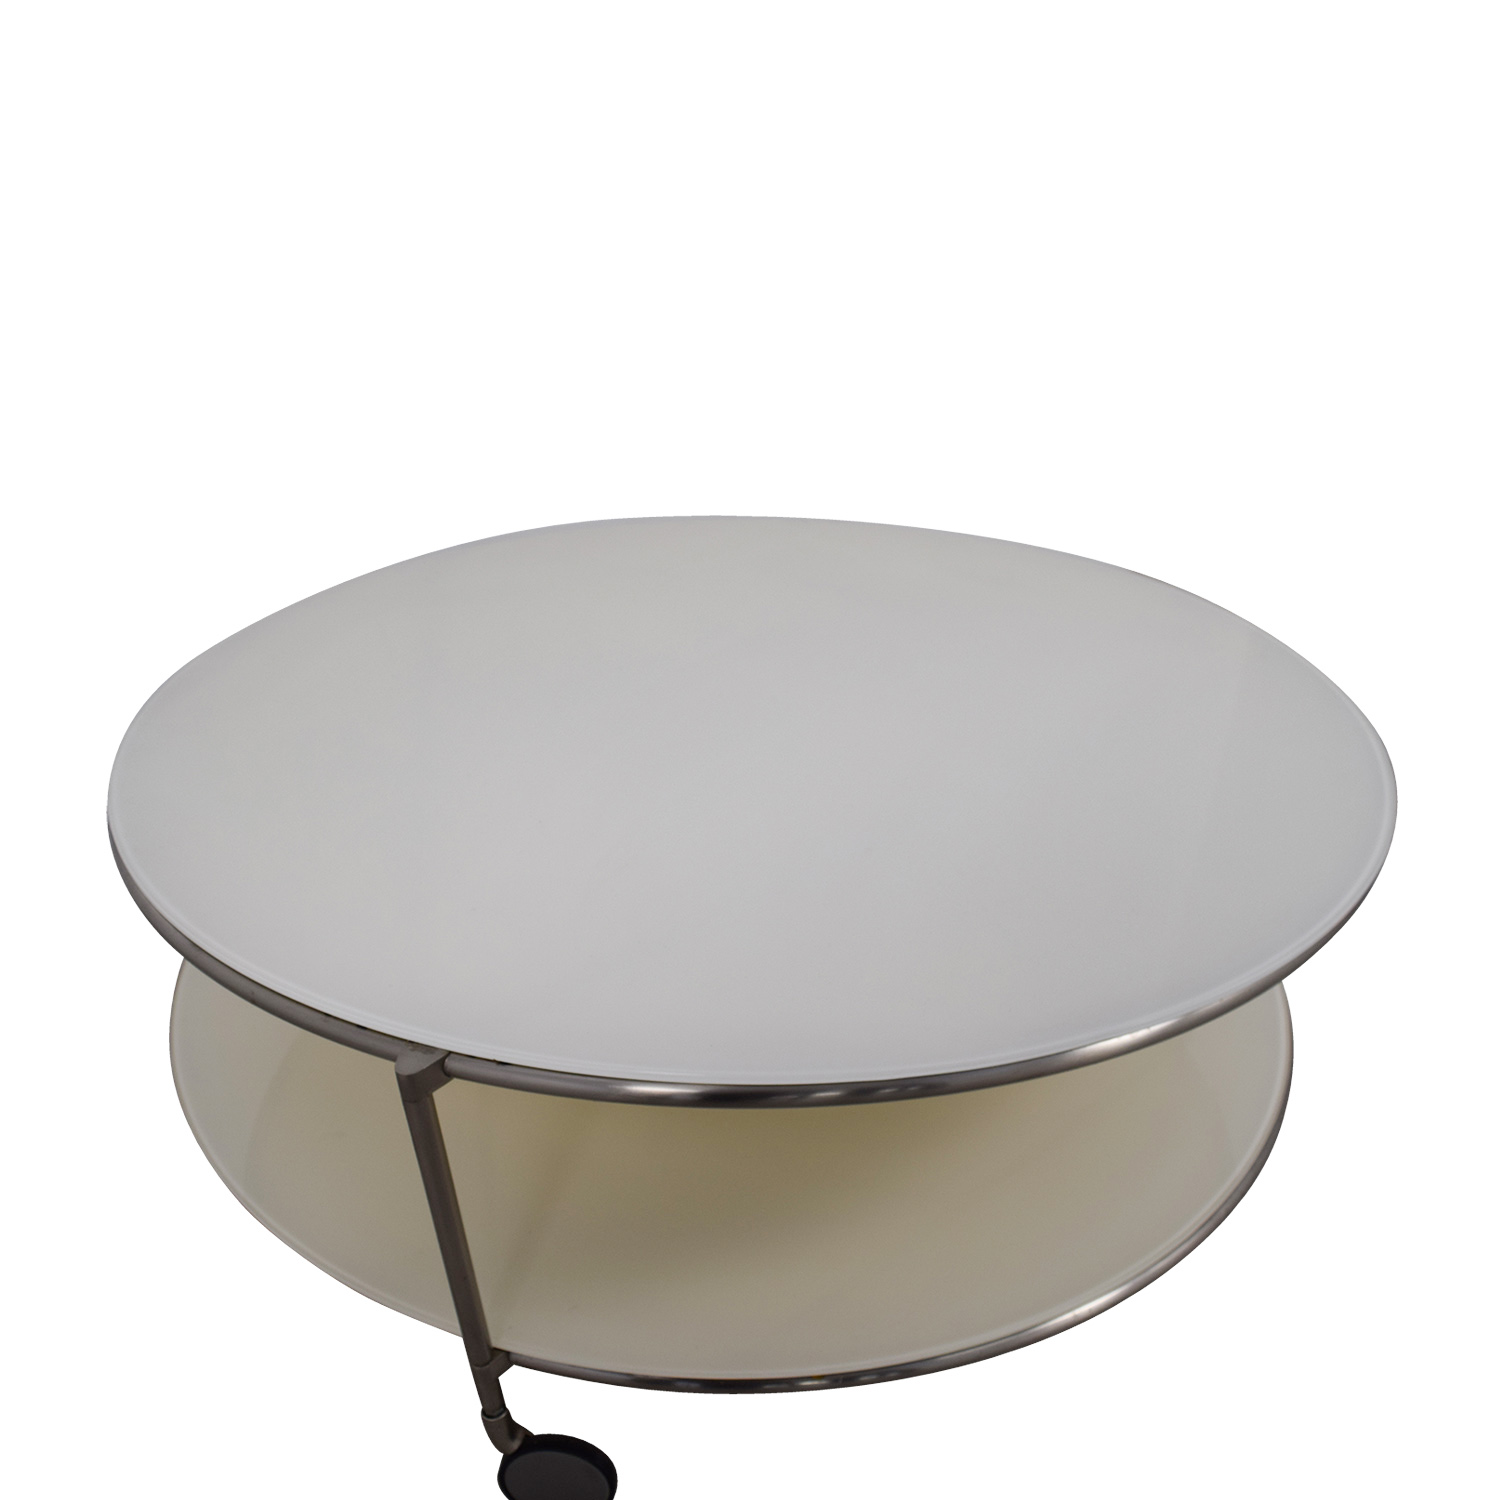 Crate & Barrel Crate & Barrel White Double Glass Cocktail Table on Castors used